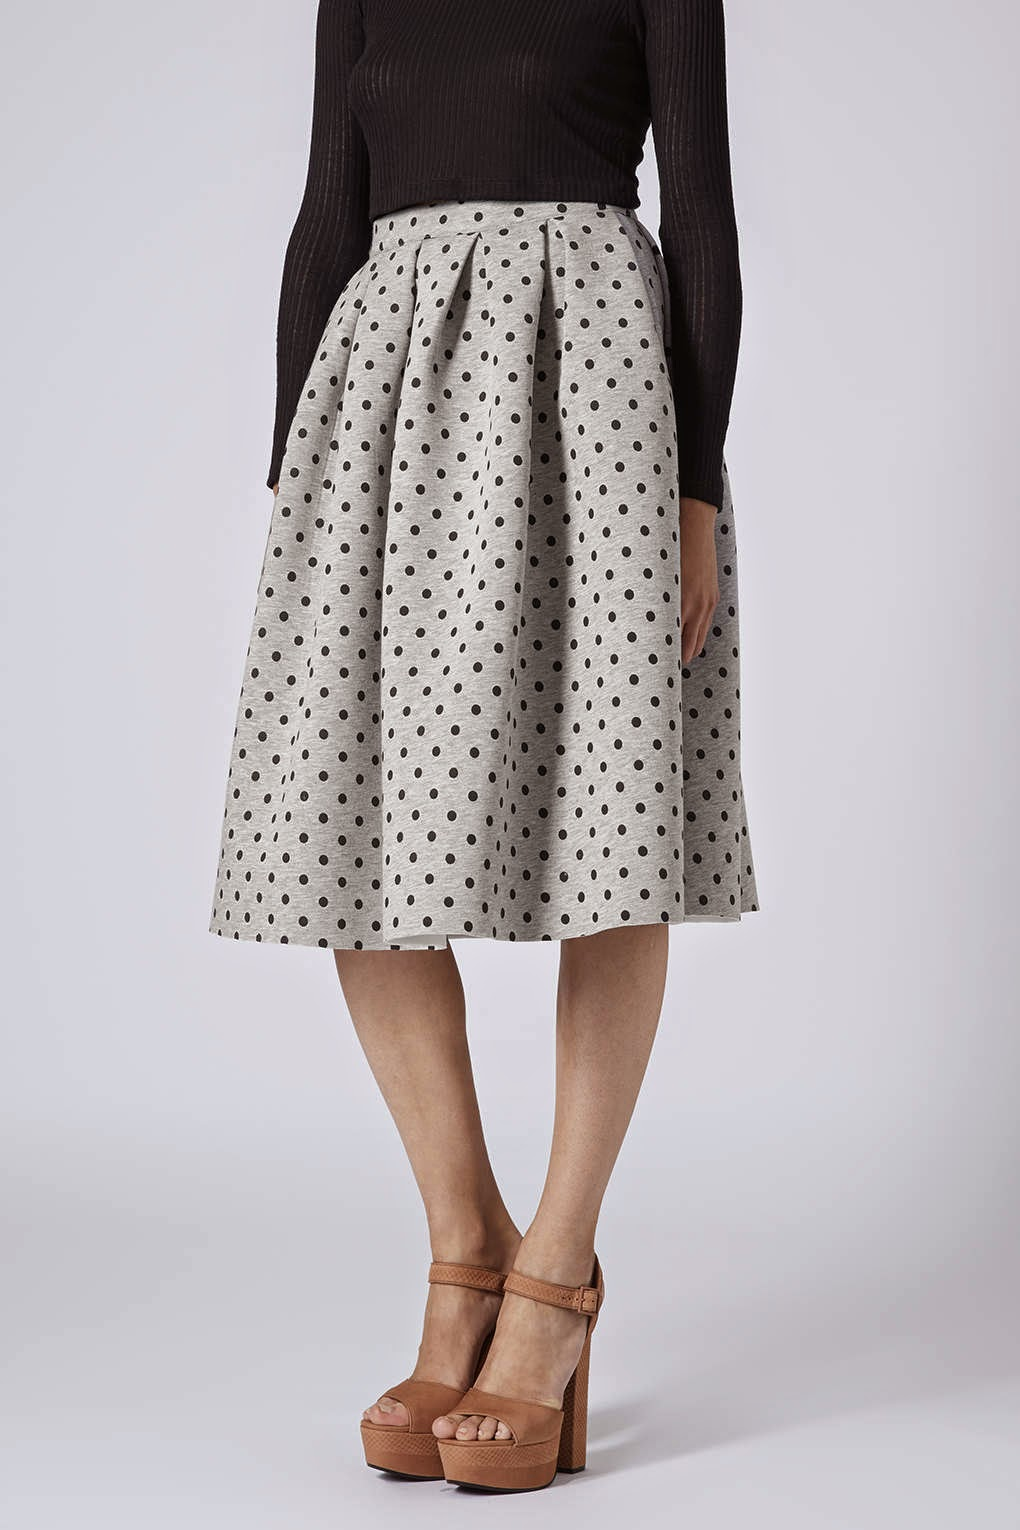 topshop spotty skirt